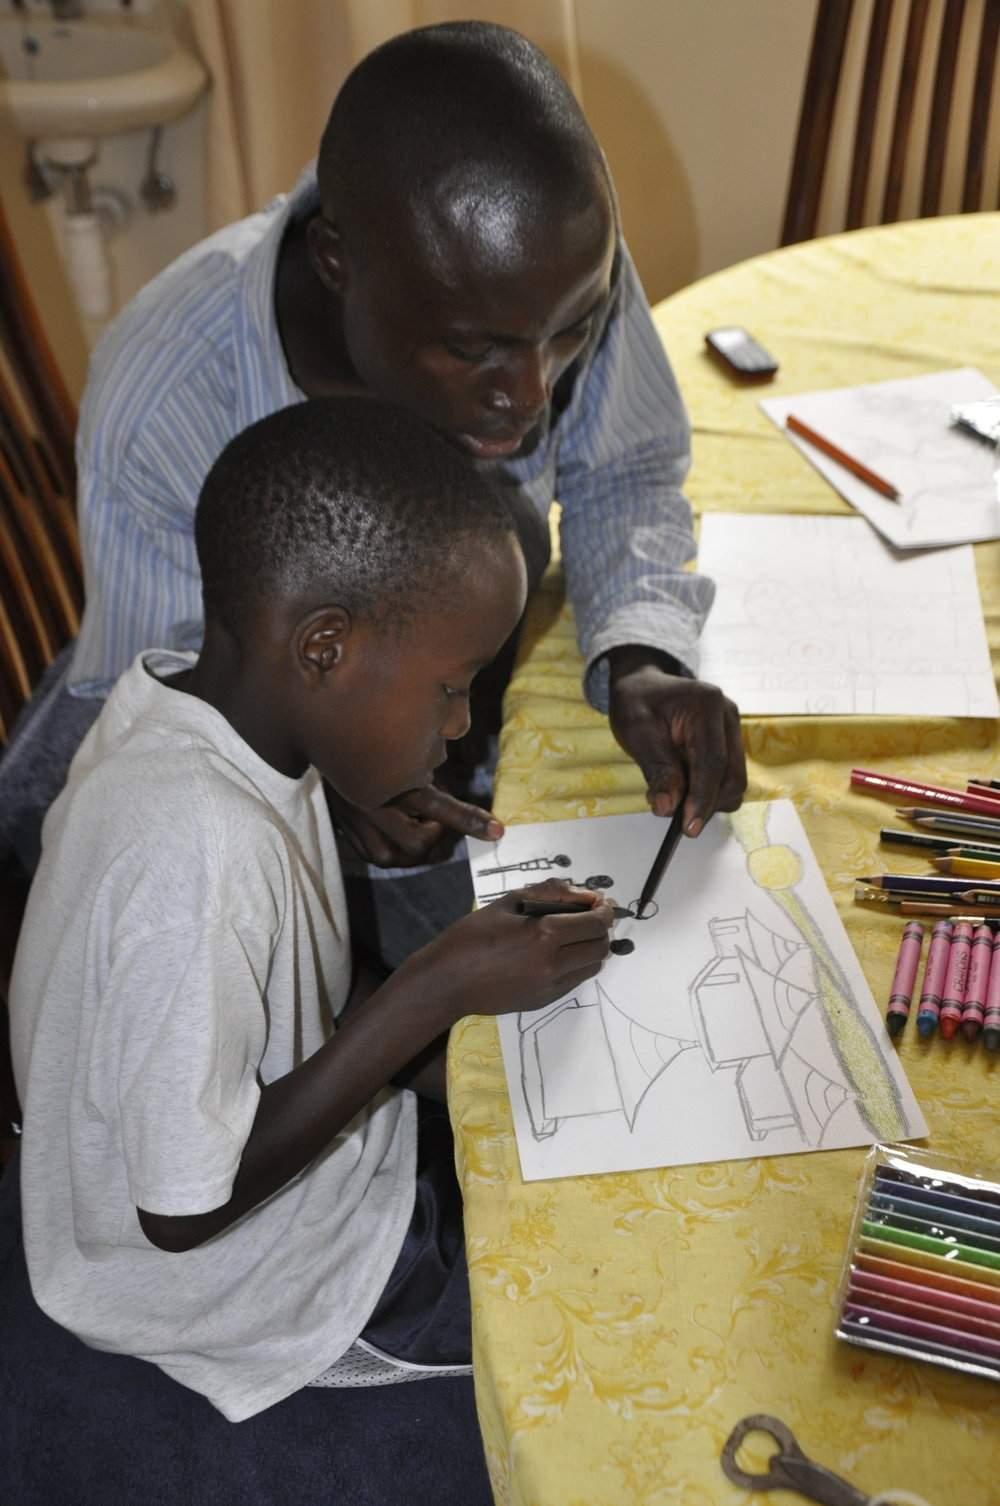 Silver Kakozzi providing art instruction for a child at Tukutana's community center in Munyonyo, Uganda.